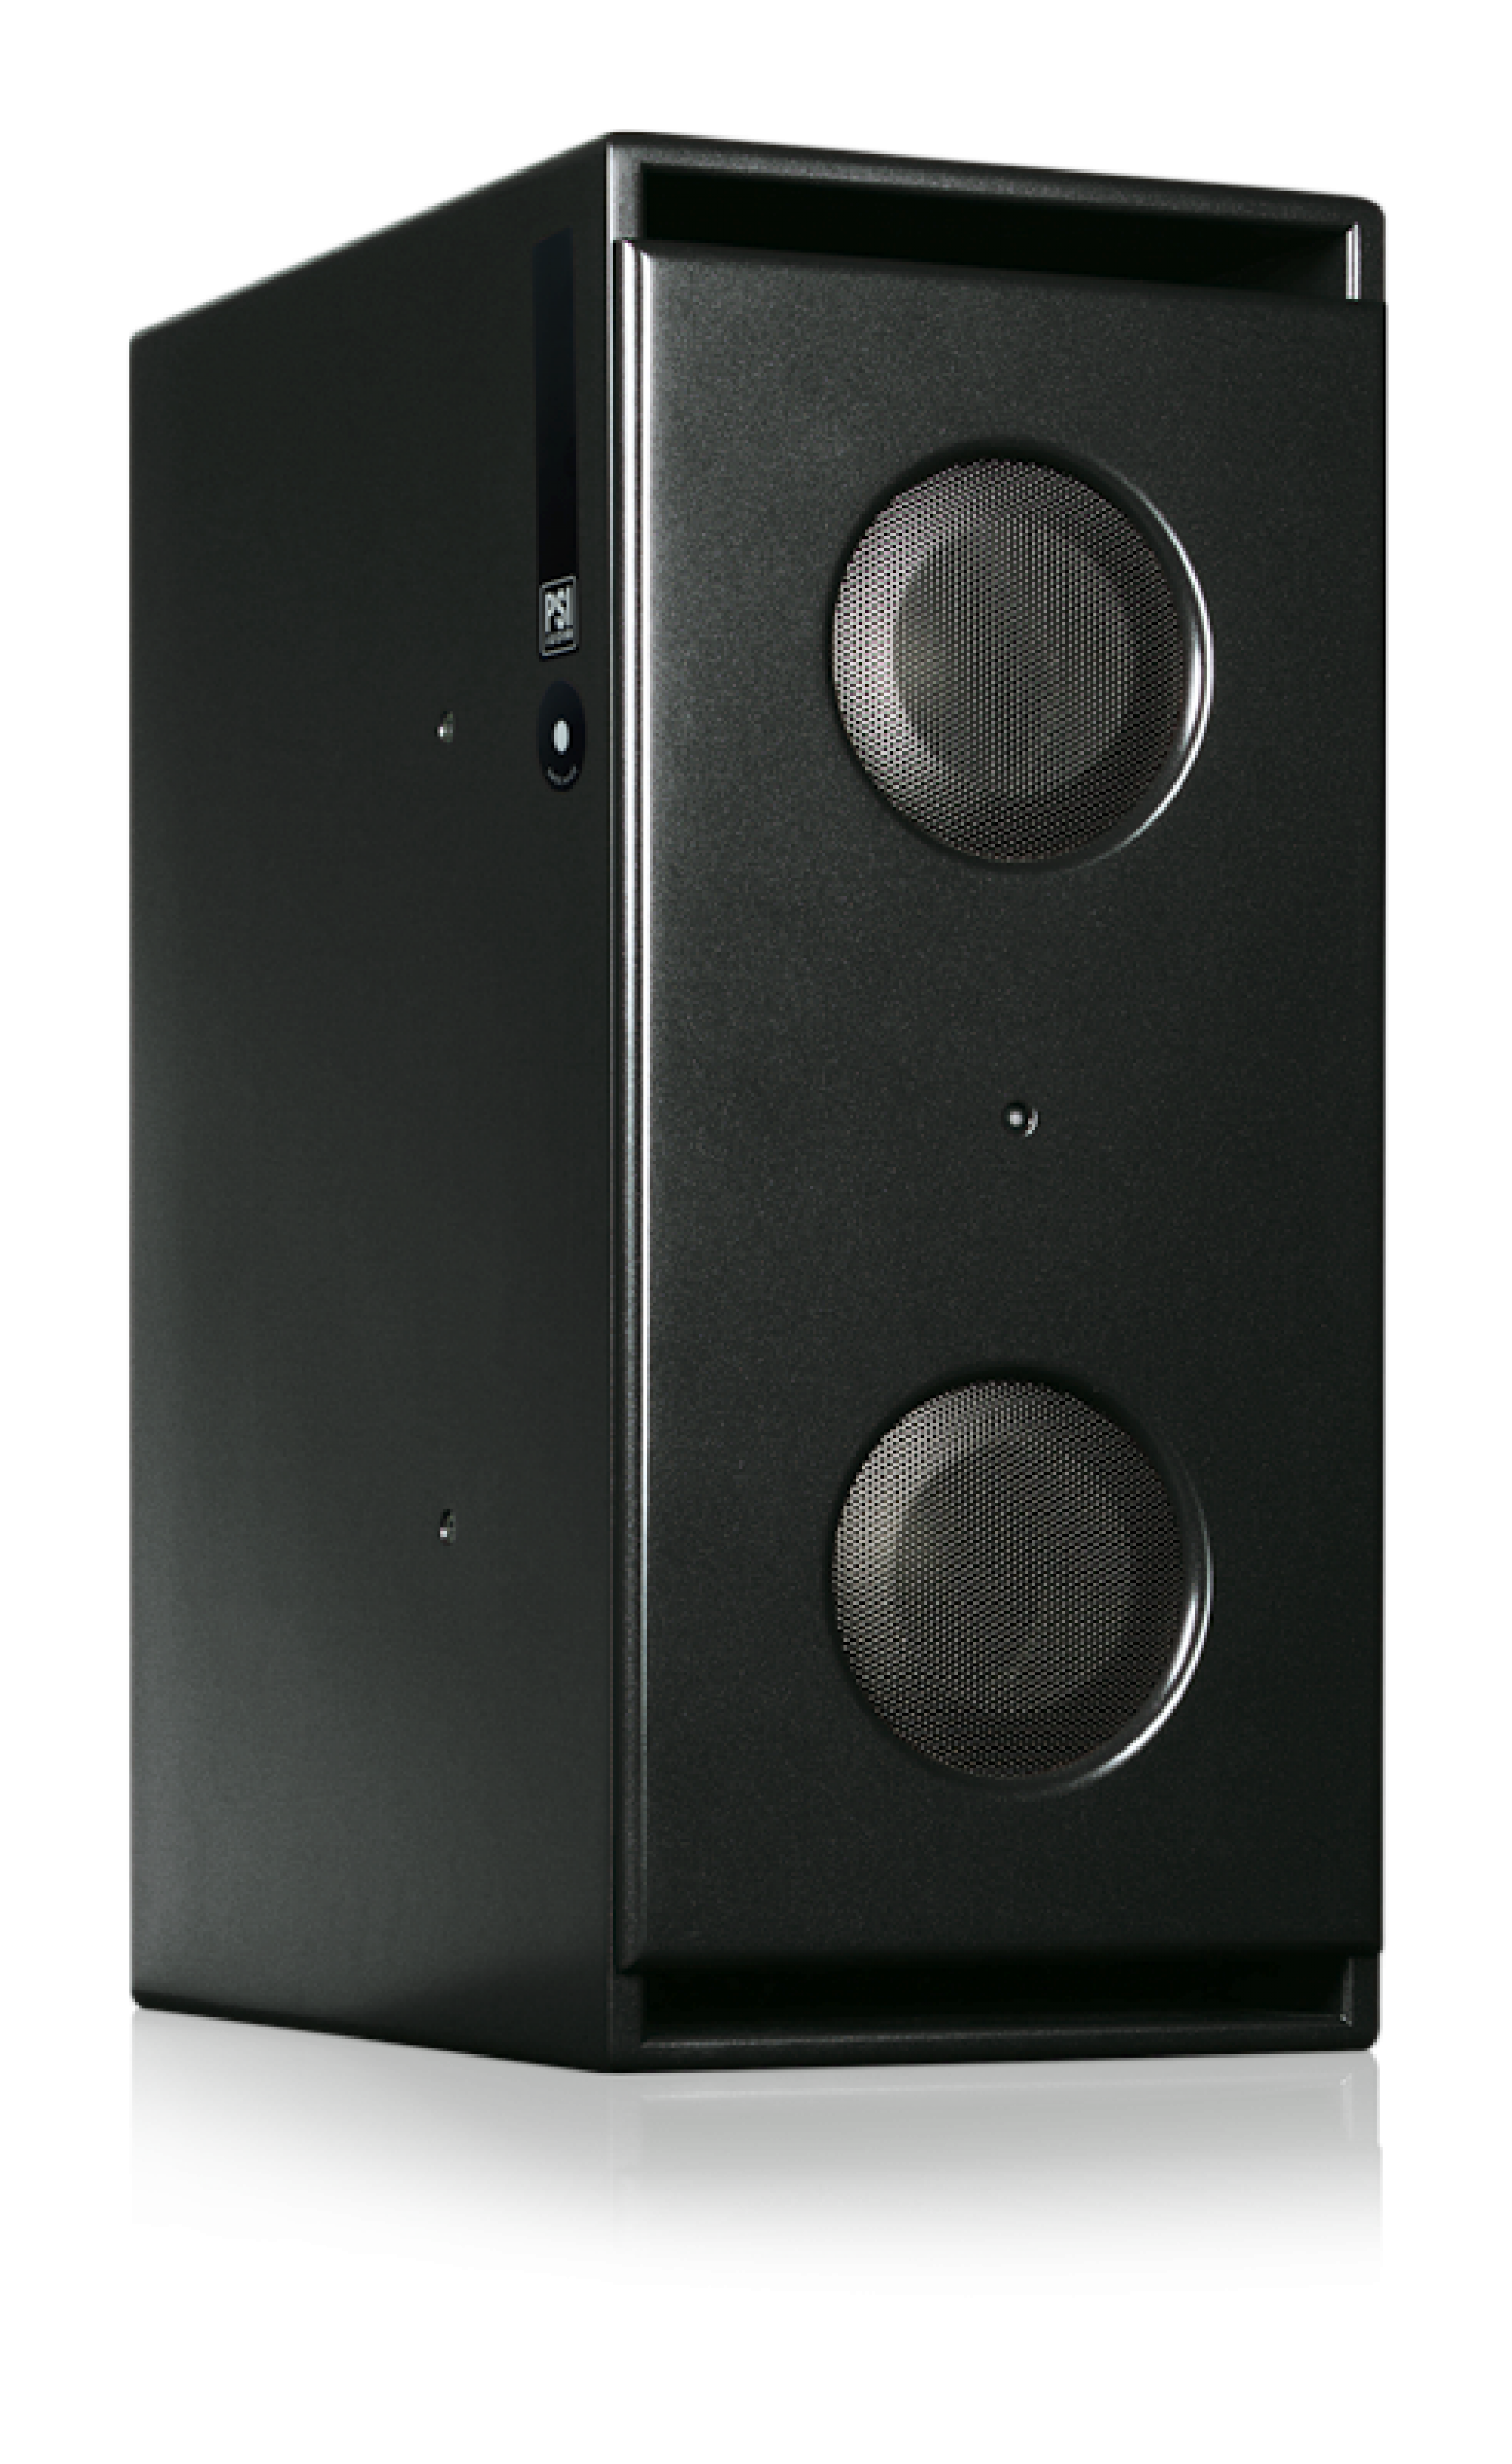 PSI AUDIO A225-M Studio Black